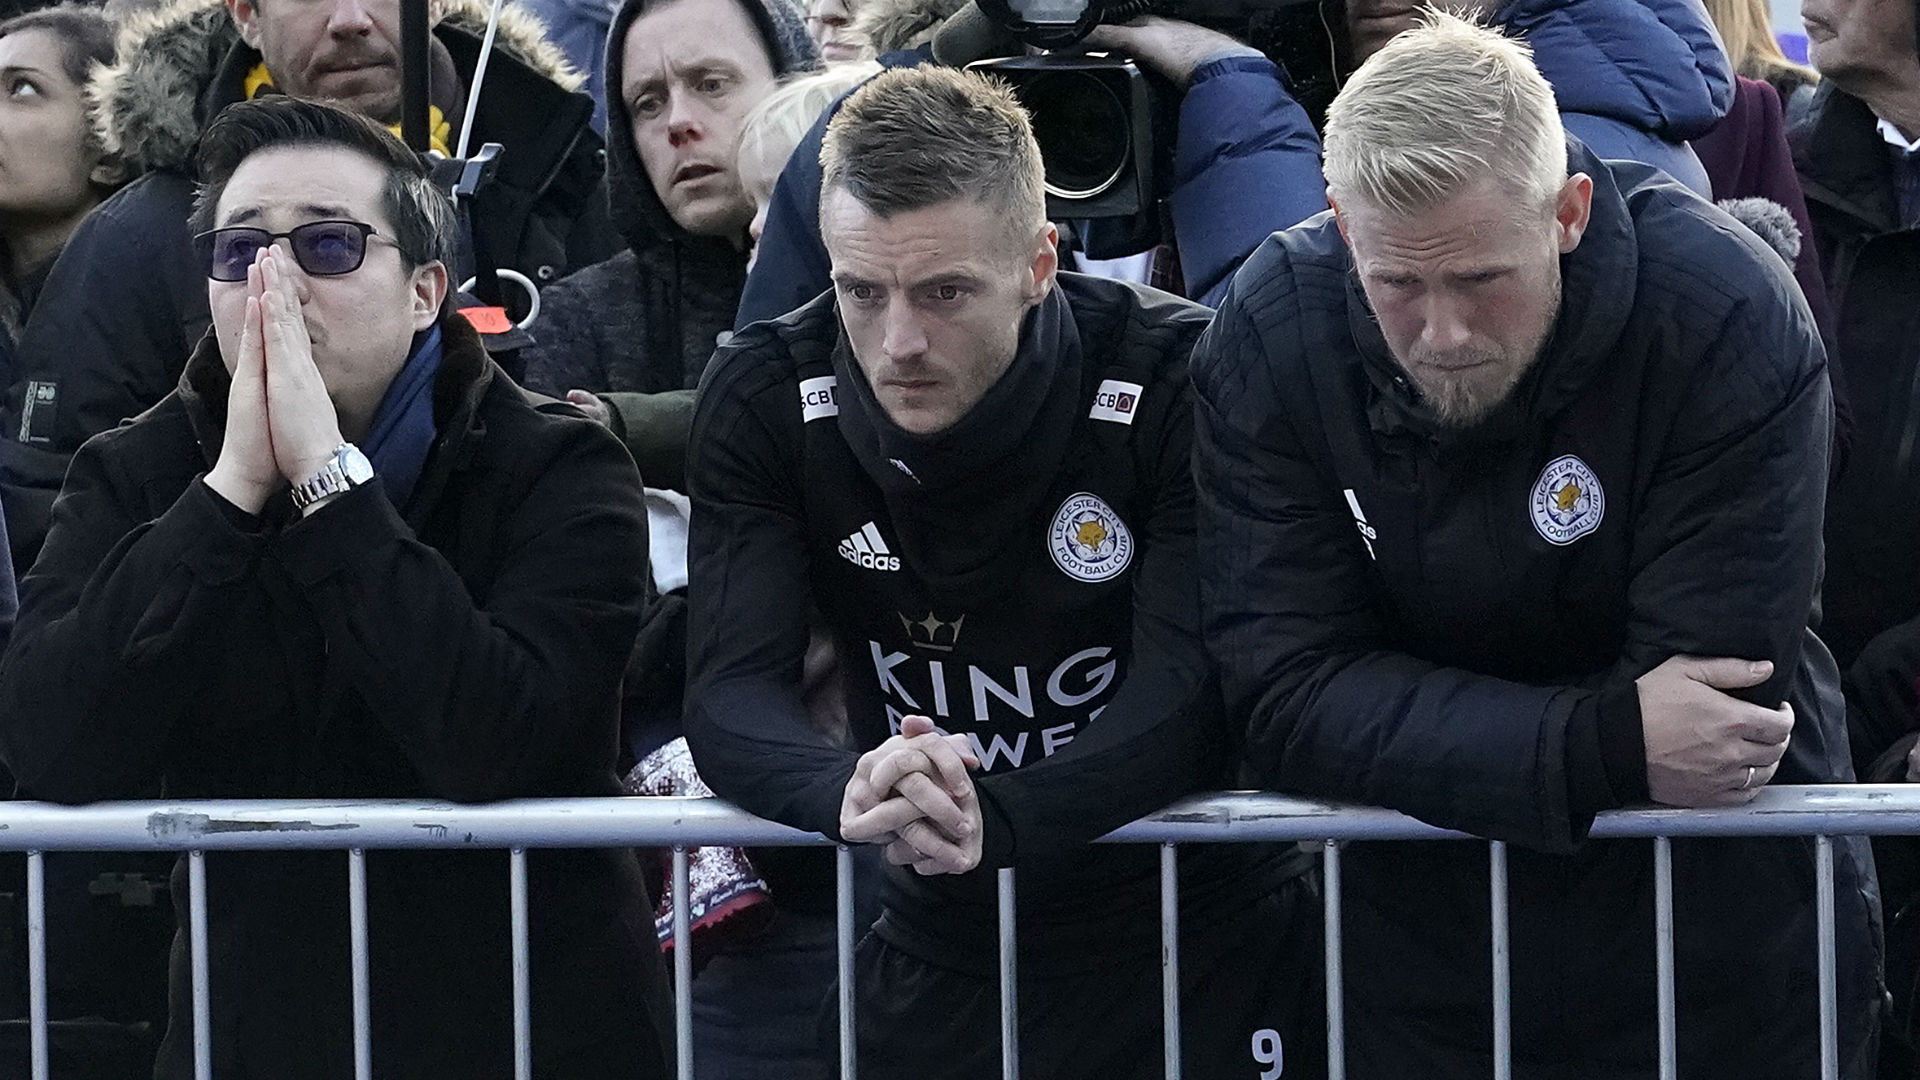 Leicester City players pay respects at owner's Thai funeral